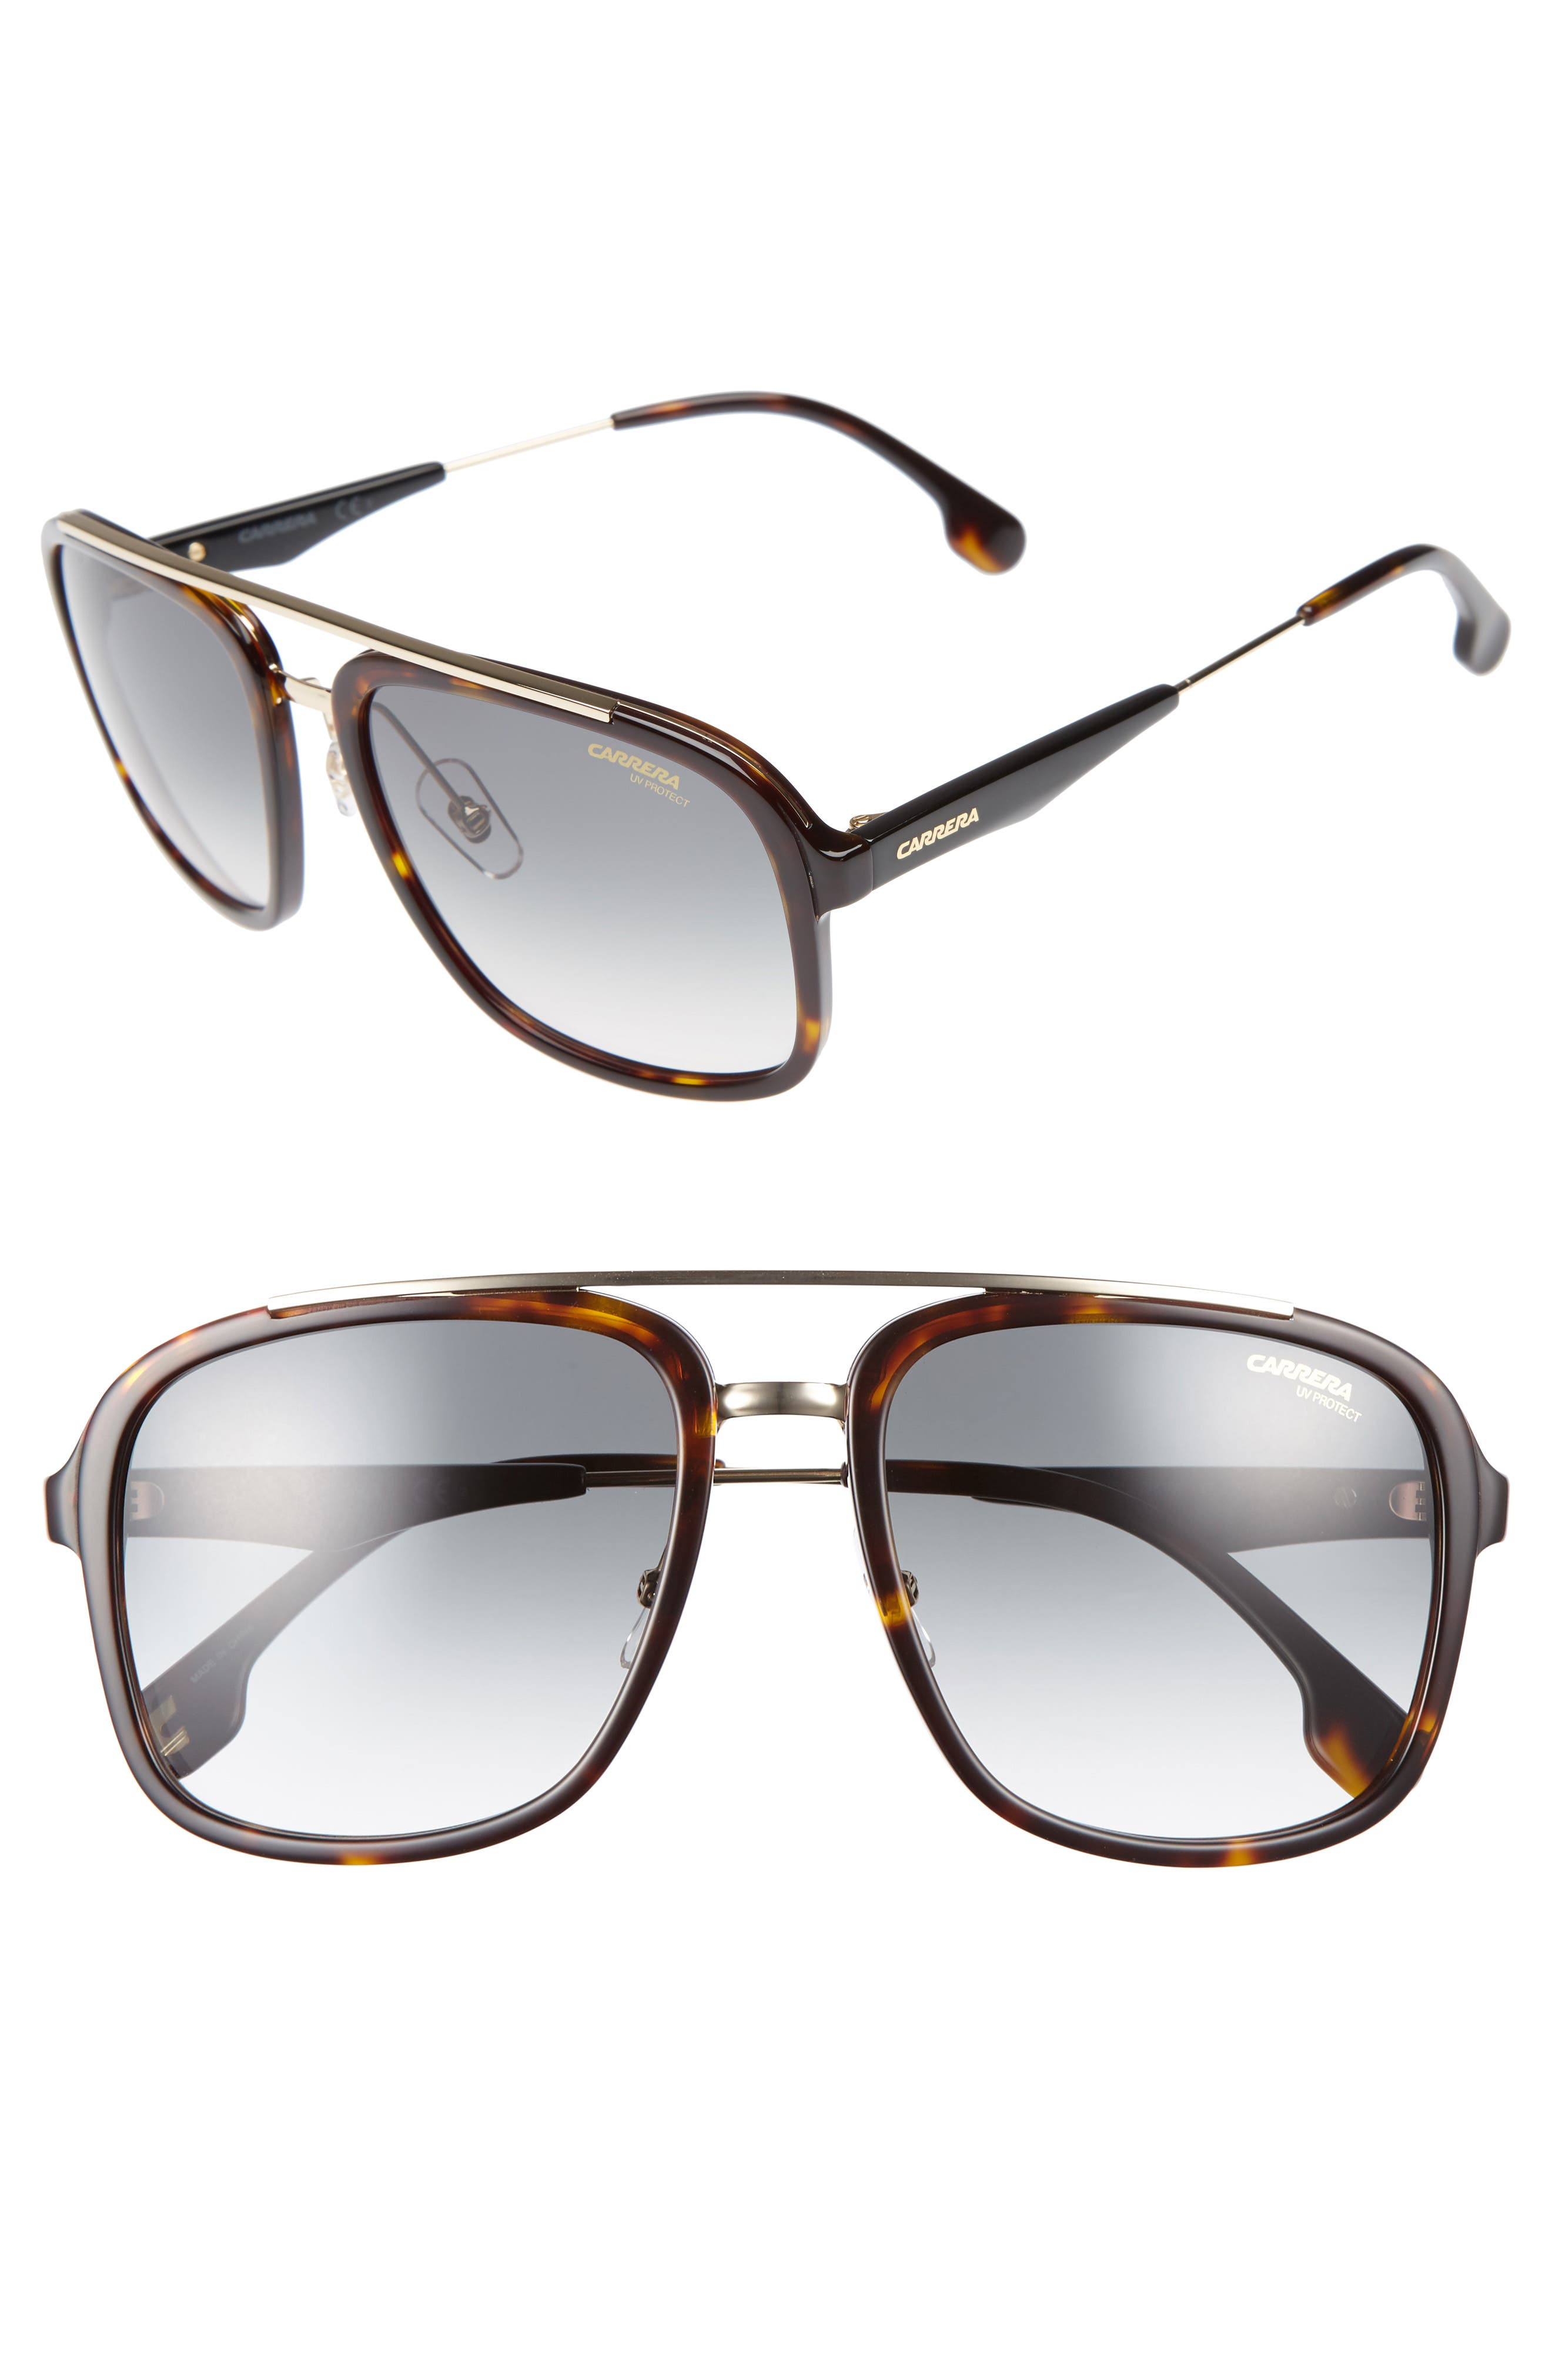 57mm Sunglasses,                         Main,                         color, Havana Gold